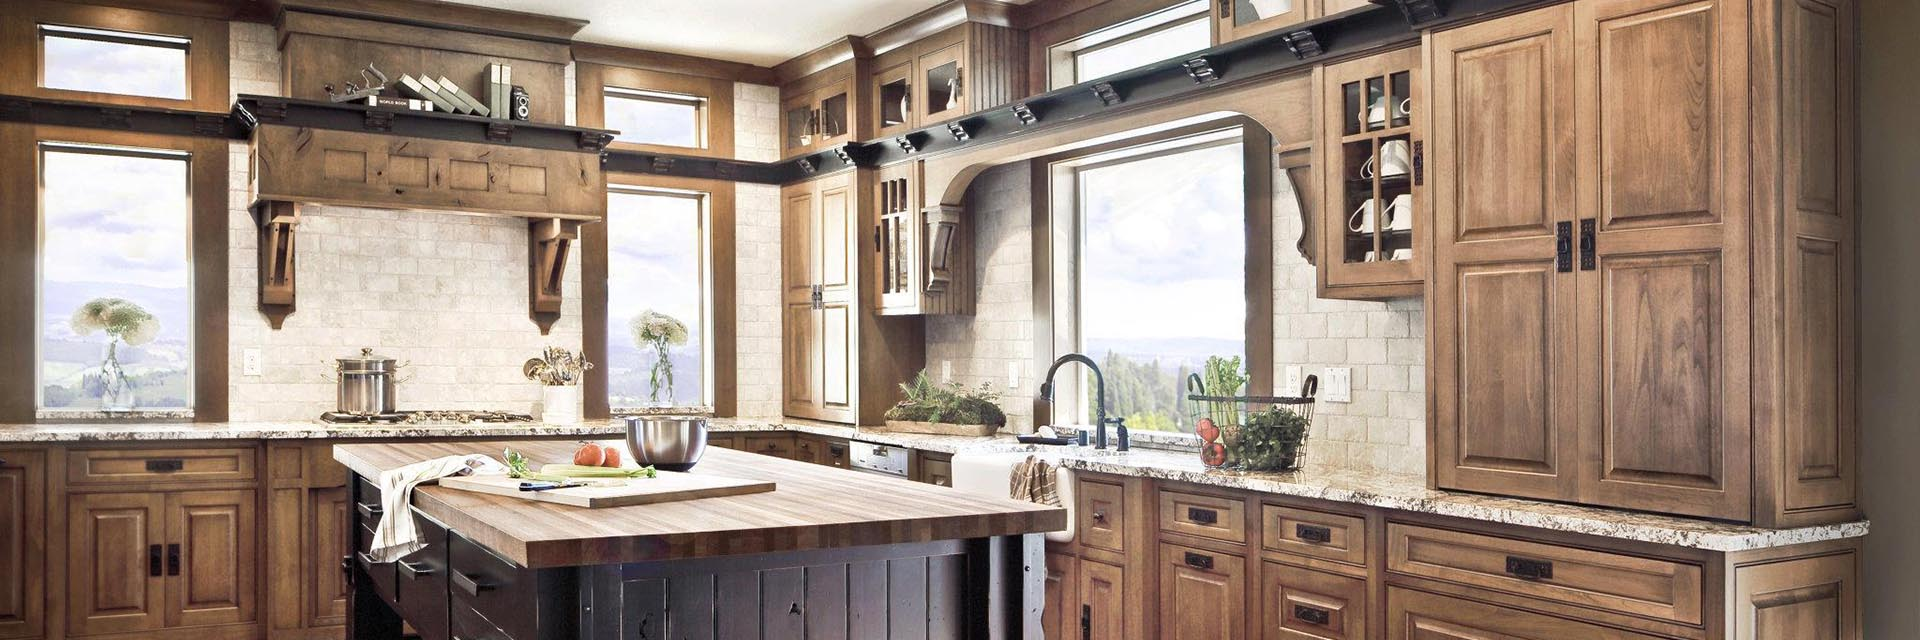 Kitchen design remodeling dewils